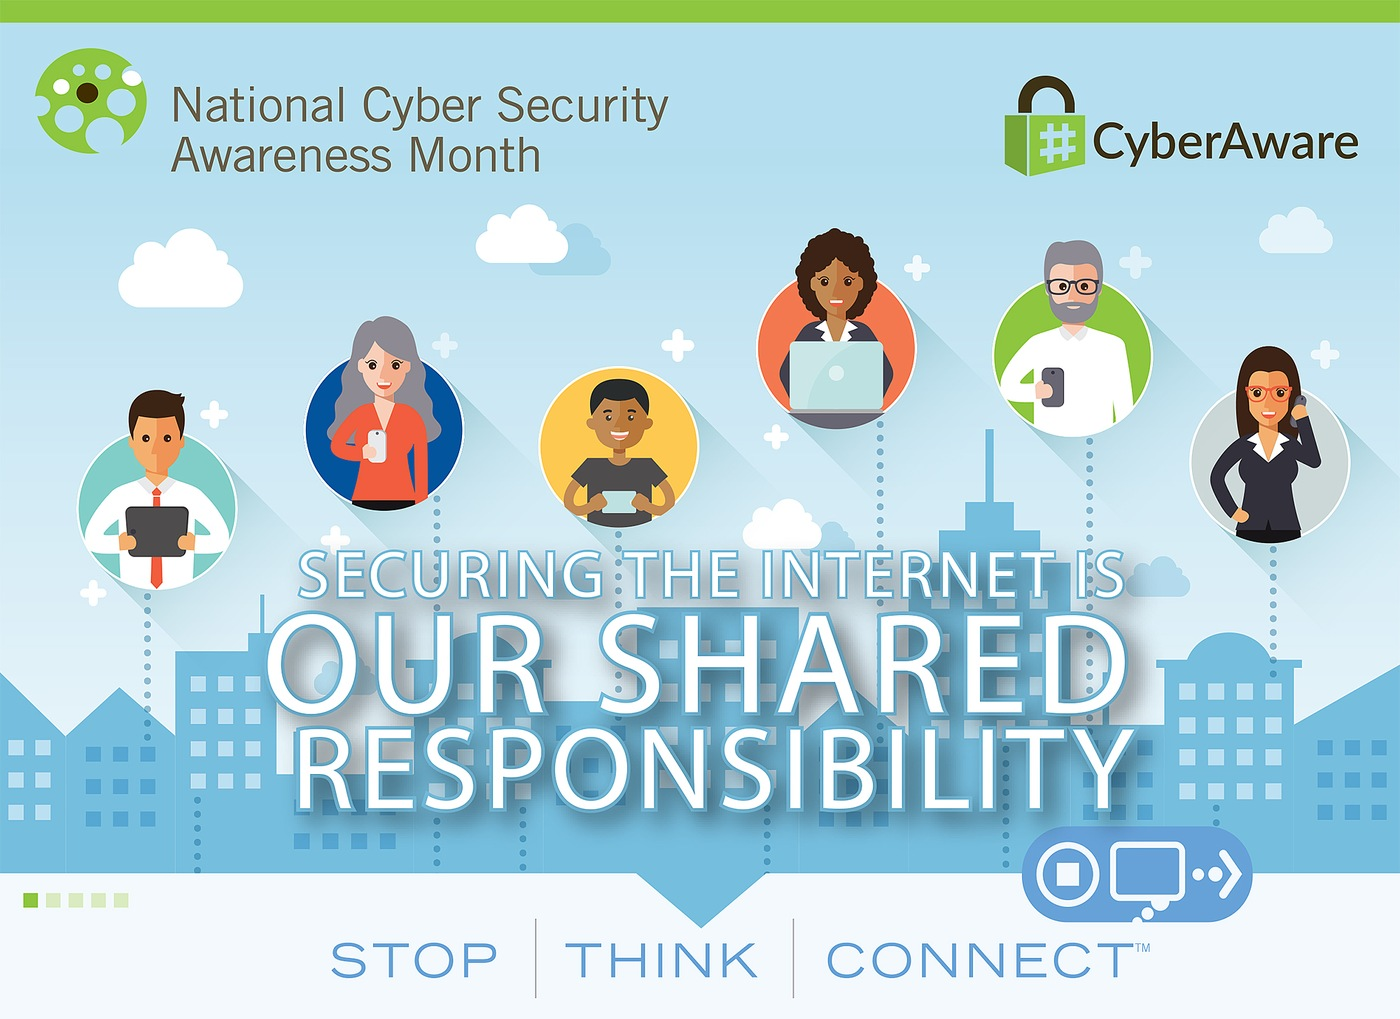 Graphic depicting logo for National Cyber Security Awareness Month 2017